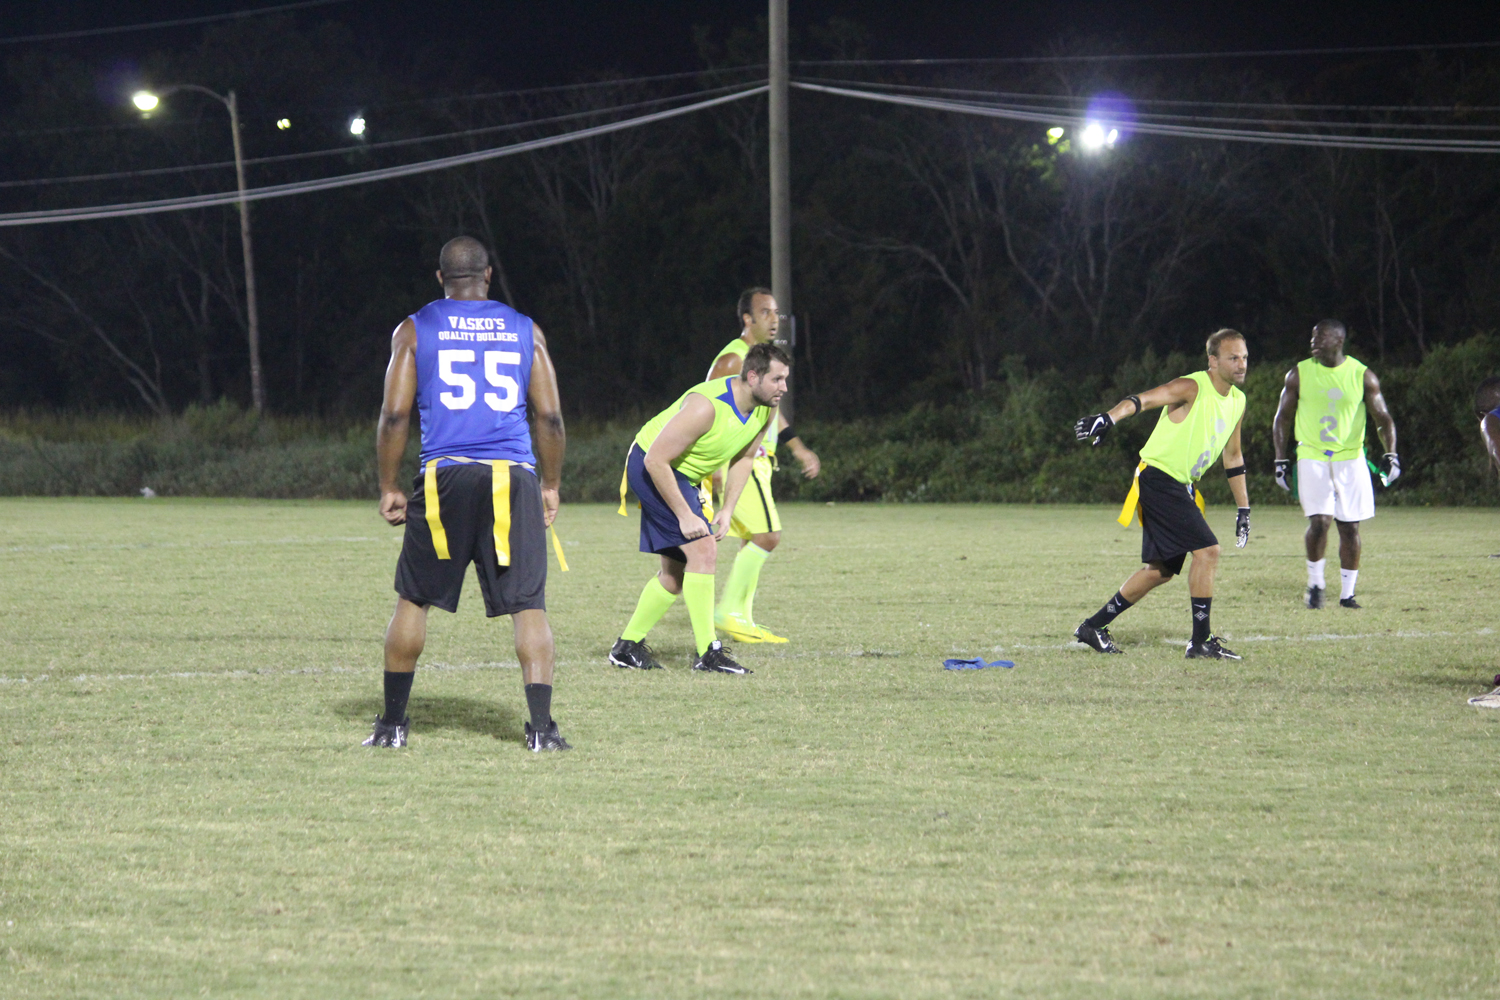 men playing flag football at night